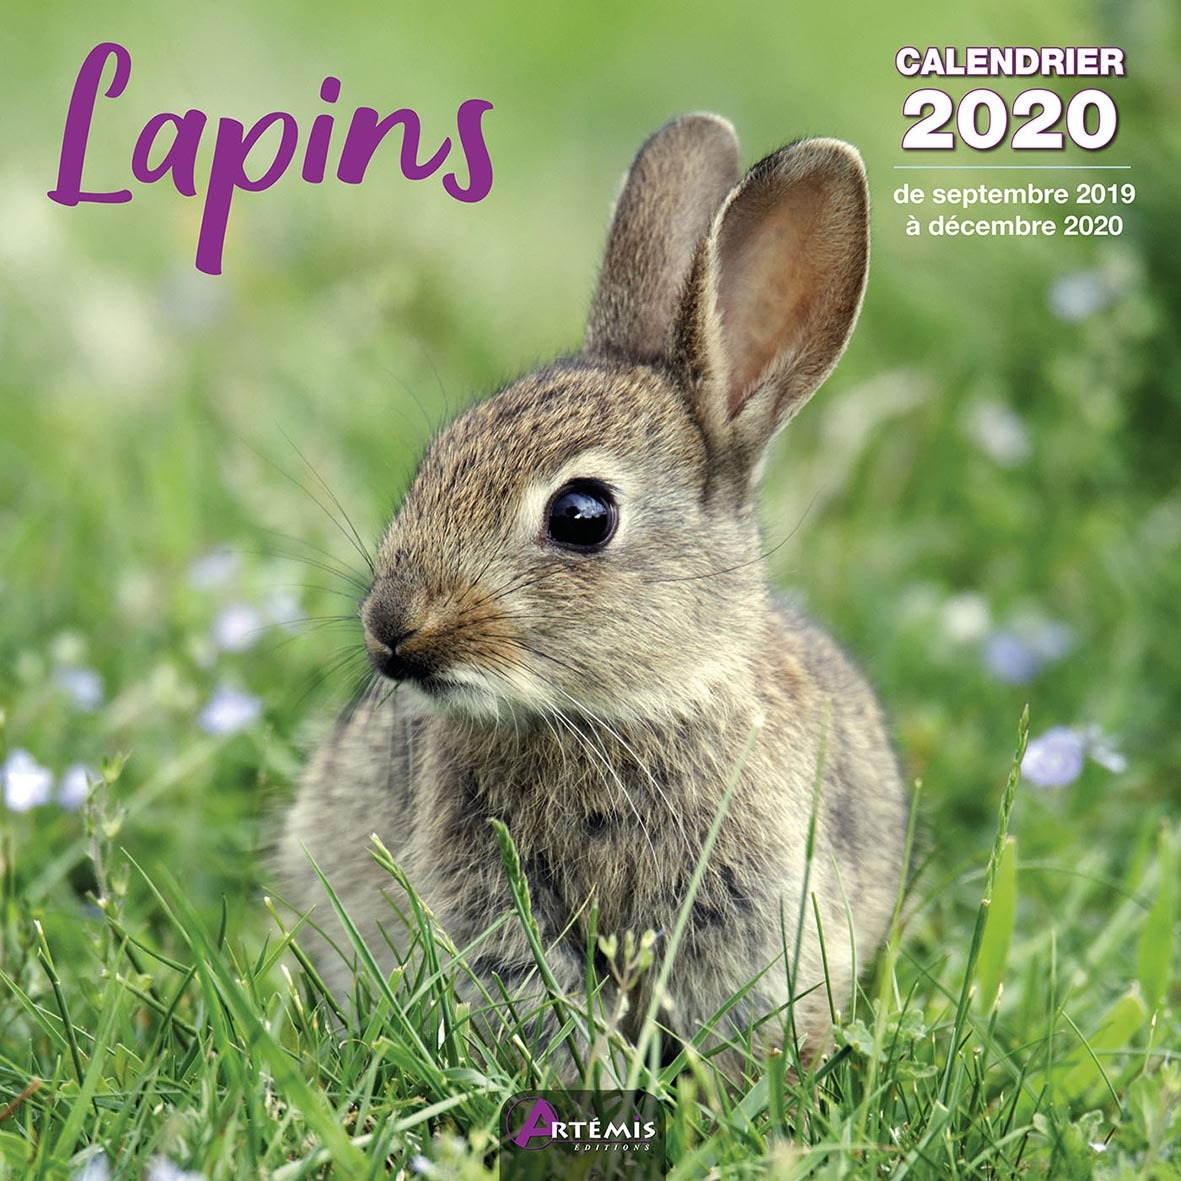 CALENDRIER LAPINS 2020